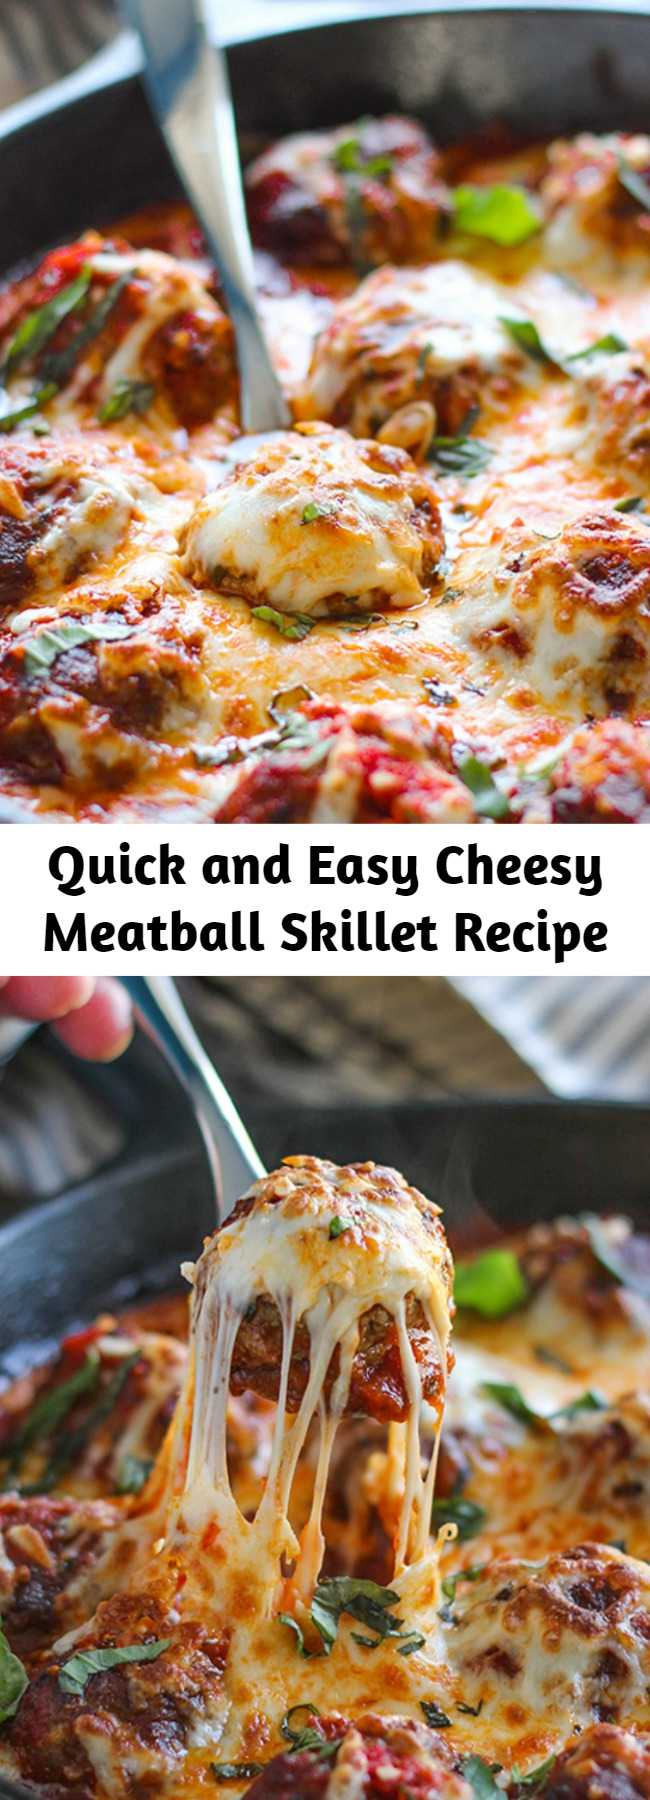 Quick and Easy Cheesy Meatball Skillet Recipe - This cheesy meatball skillet has so many ways to be enjoyed! Pop them in a sub or mix them with pasta, or have them with some bread!